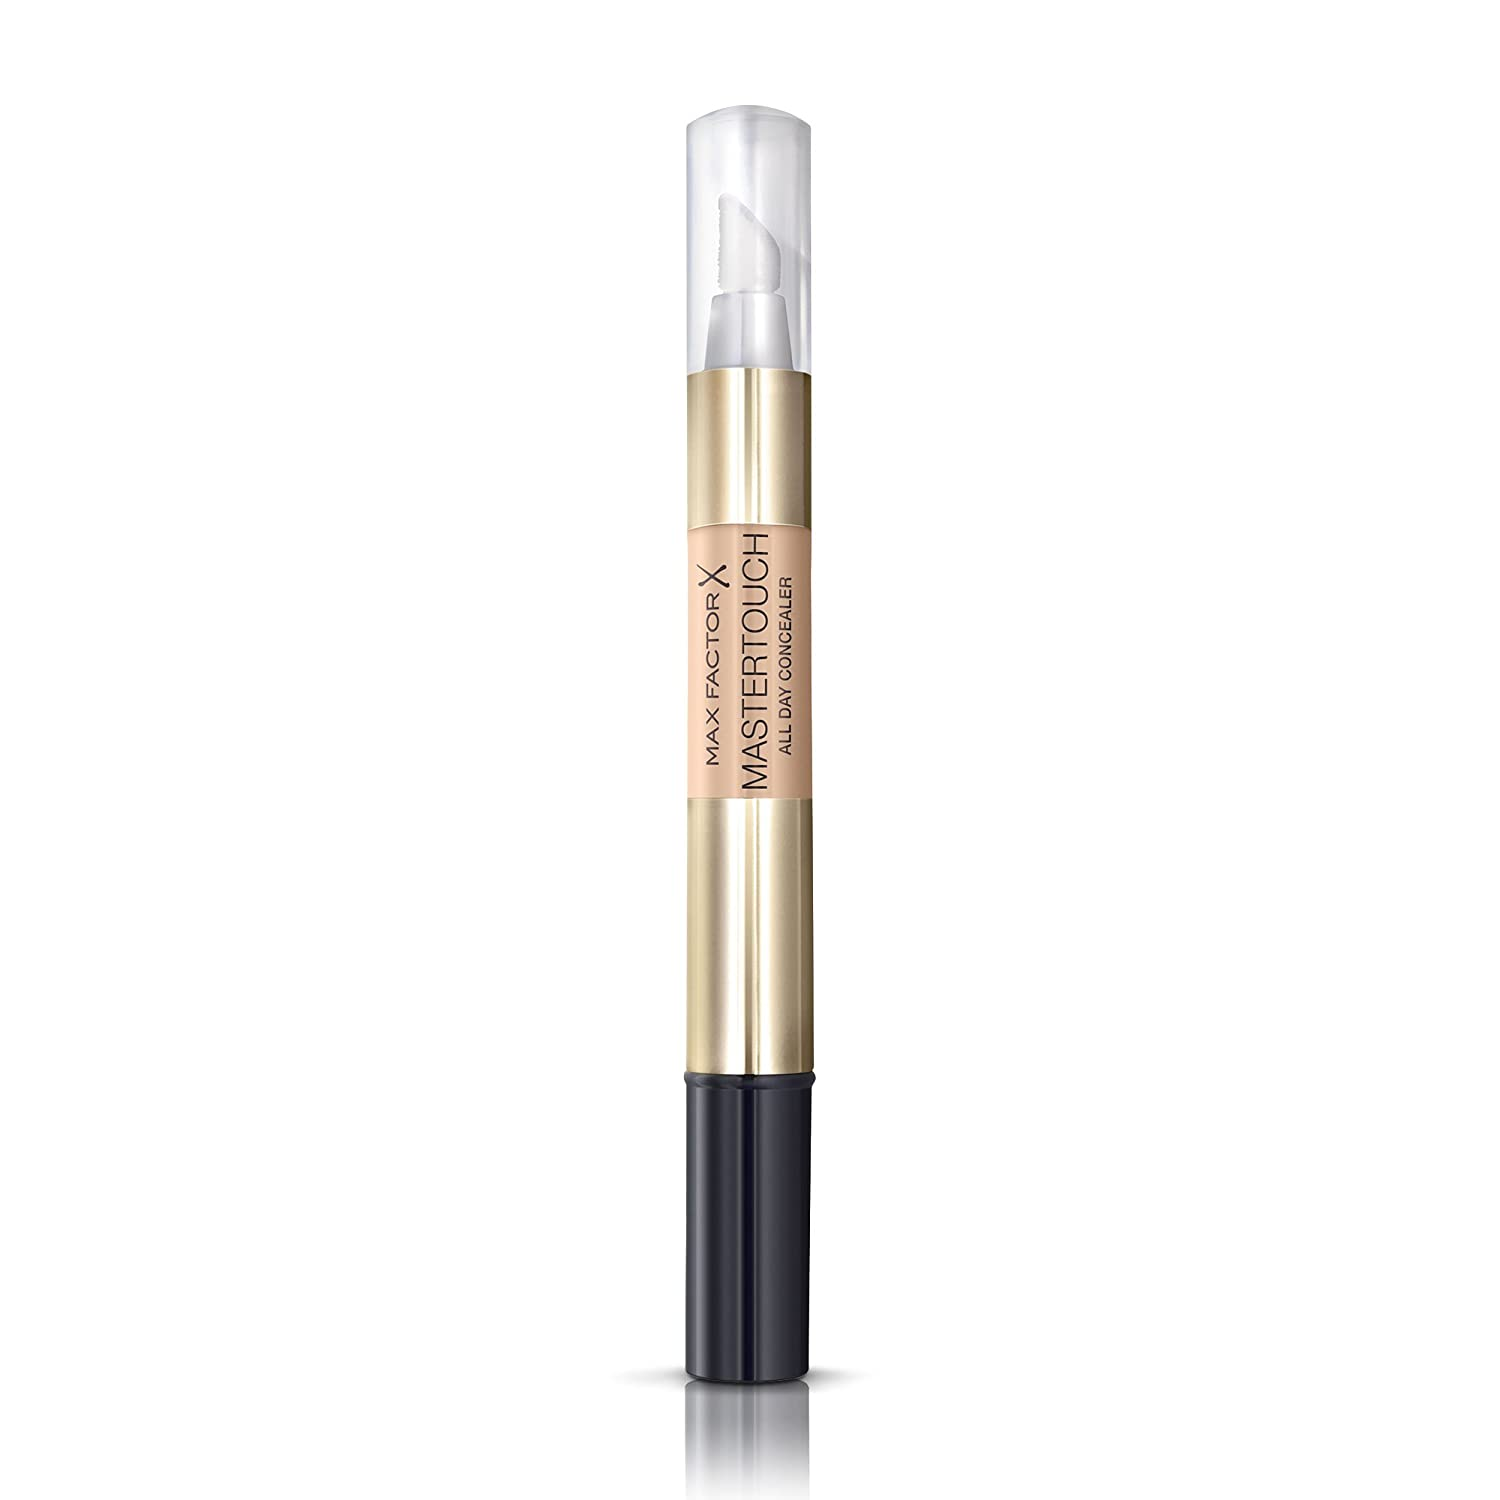 Max Factor Mastertouch All Day Concealer Pen, Spf 10, 303 Ivory by Amazon